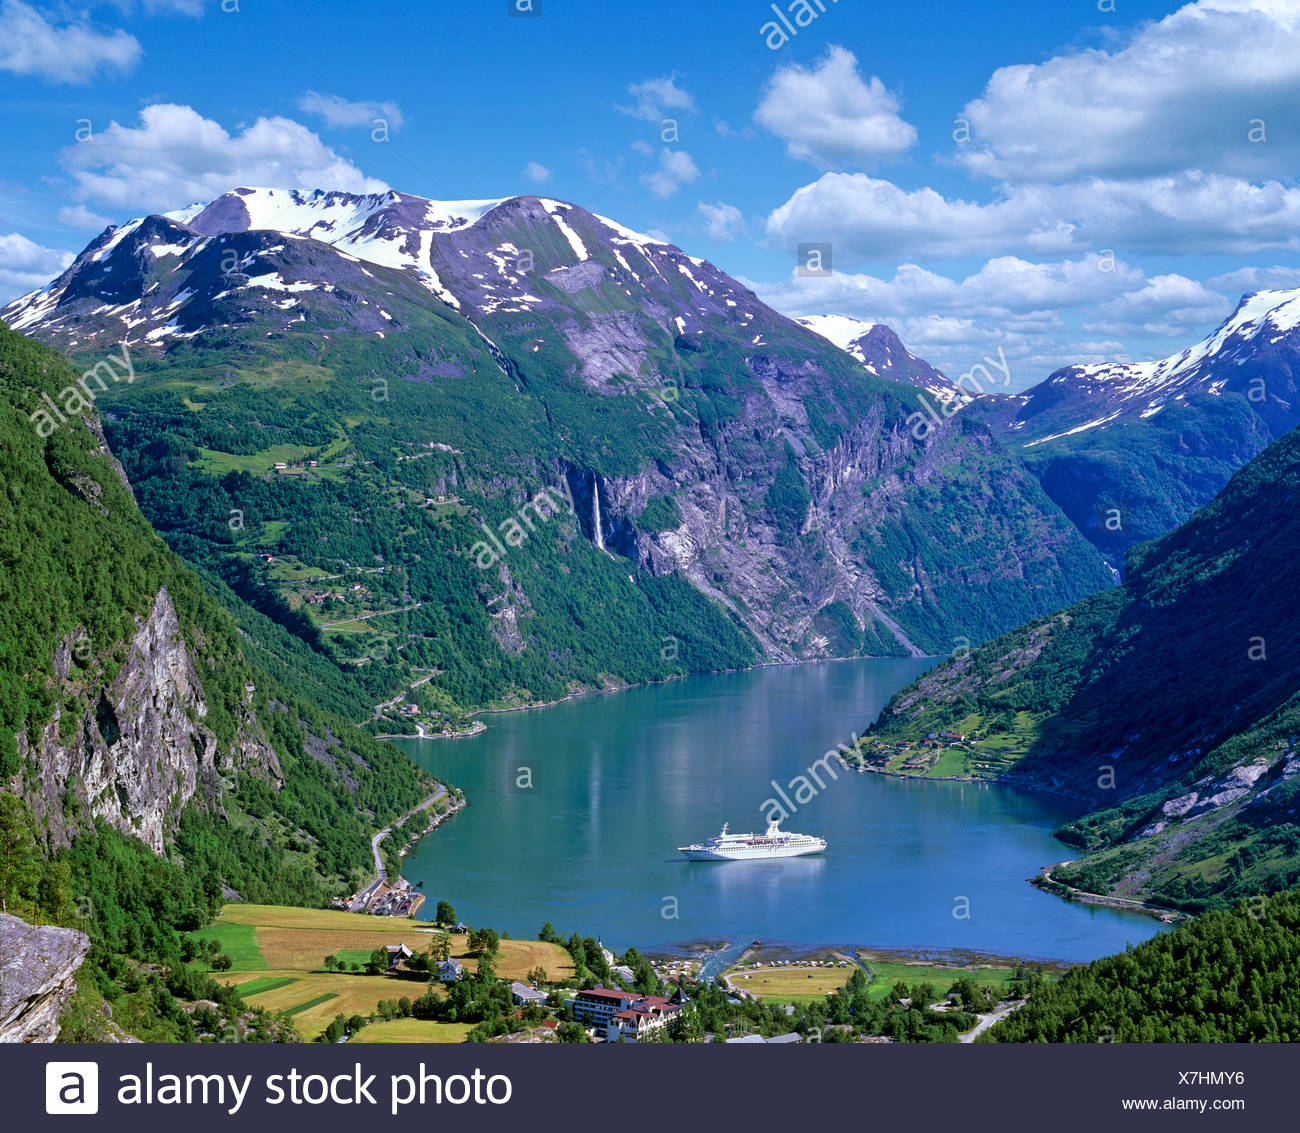 Geiranger, view from Flydalsjuvet, cruise ship in the Geiranger Fjord, Norway - Stock Image